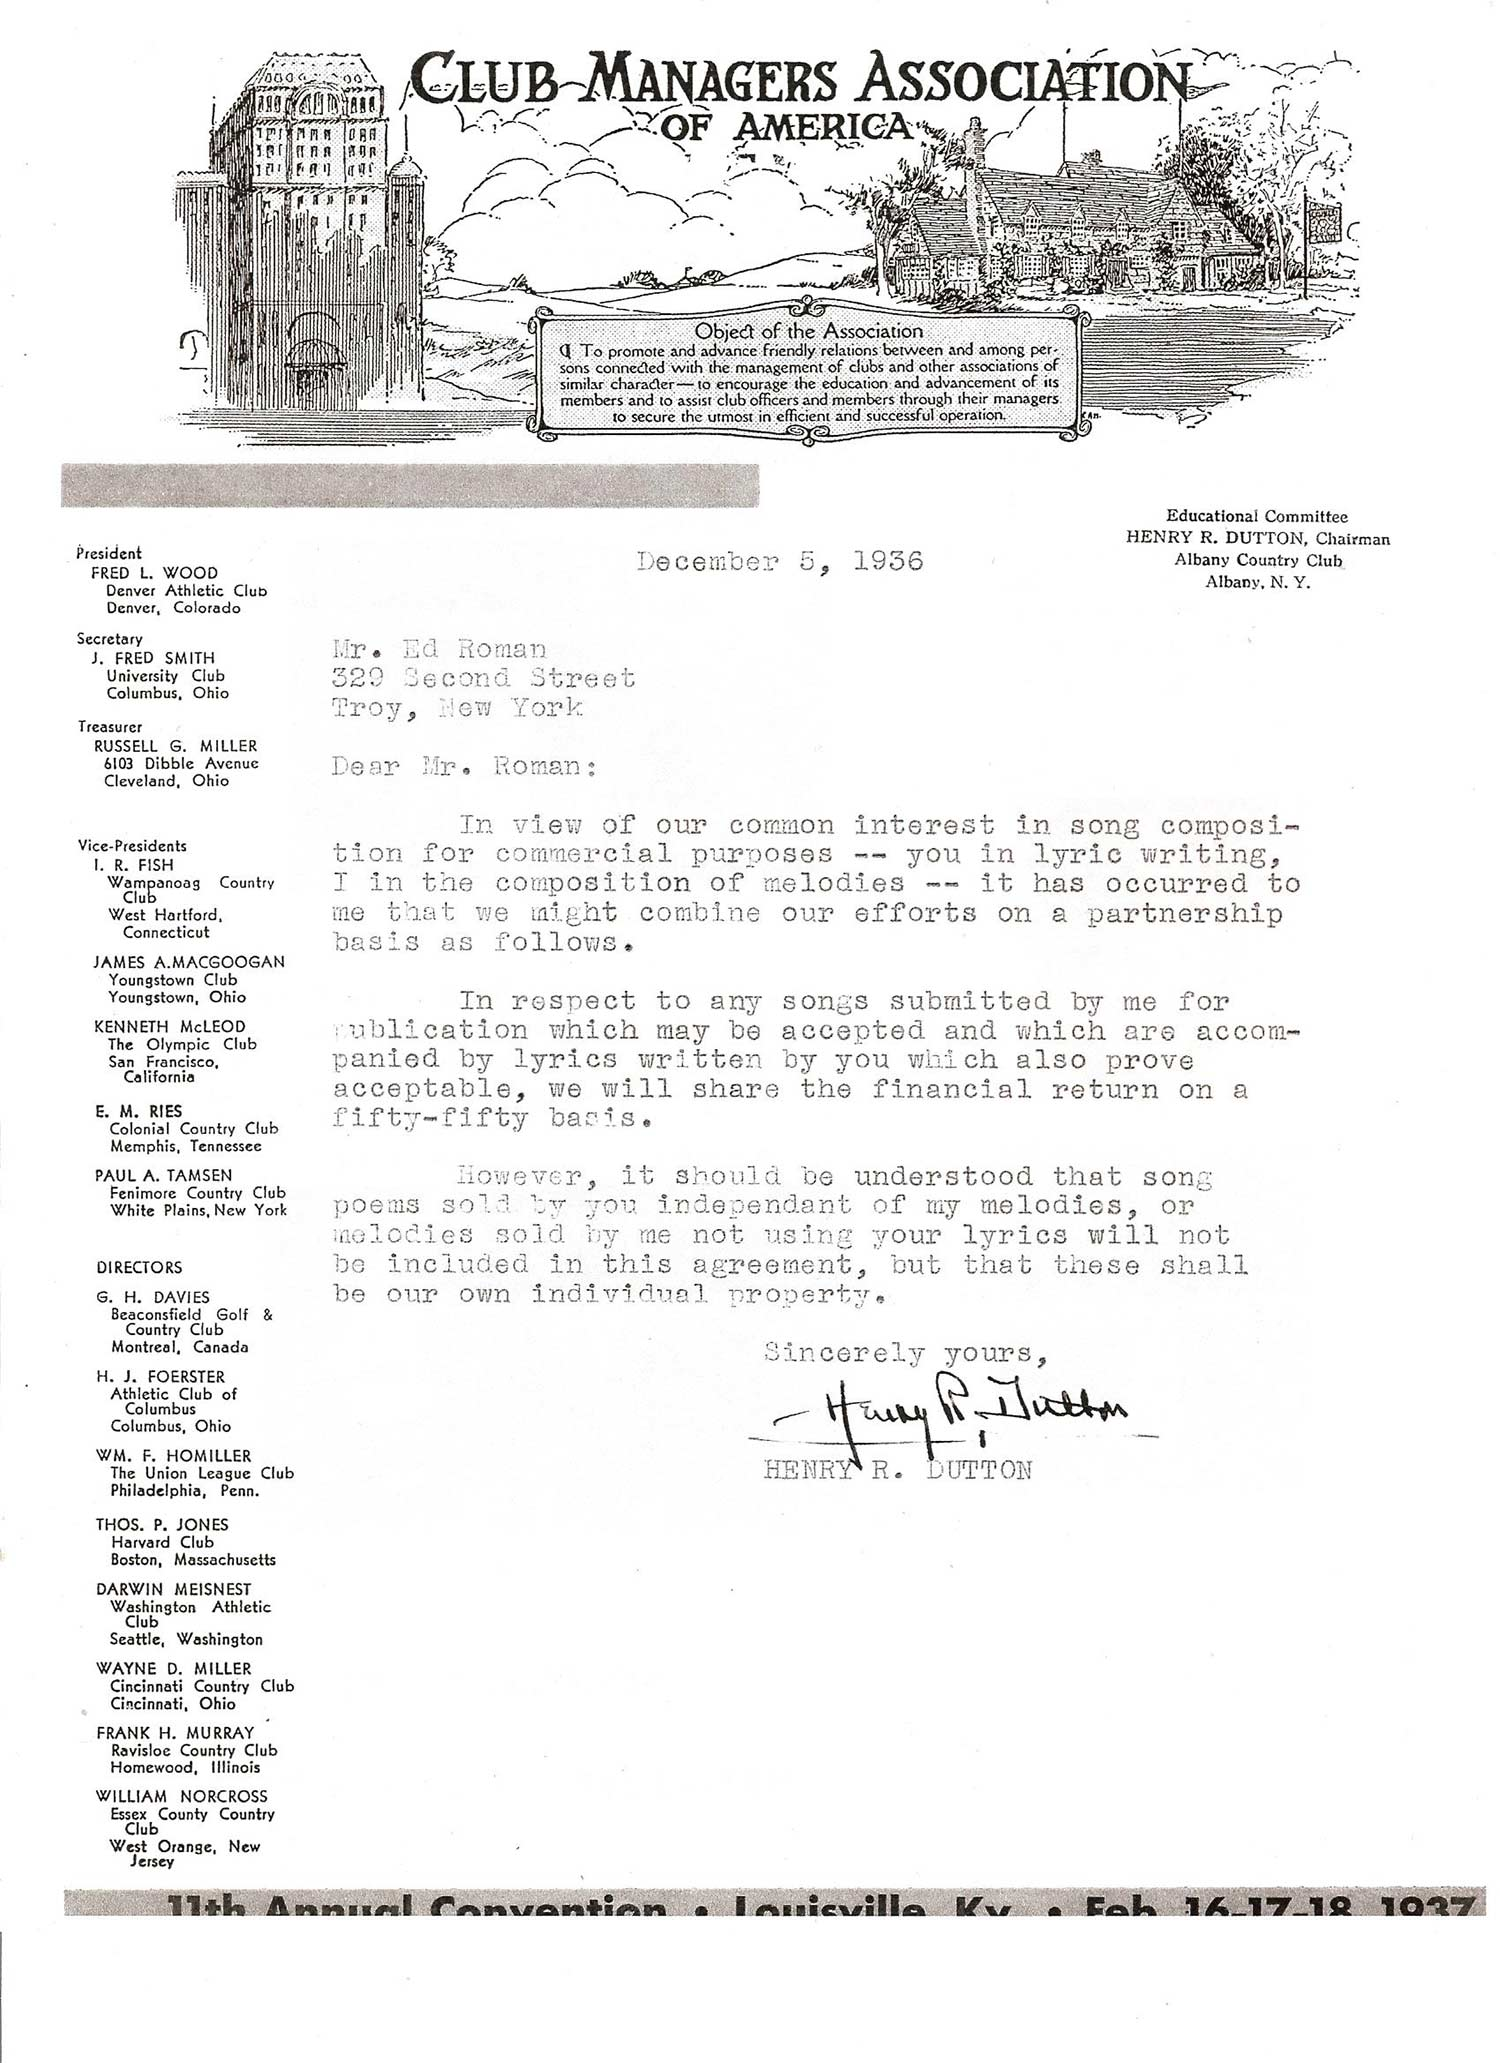 Henry R. Dutton Club Letter